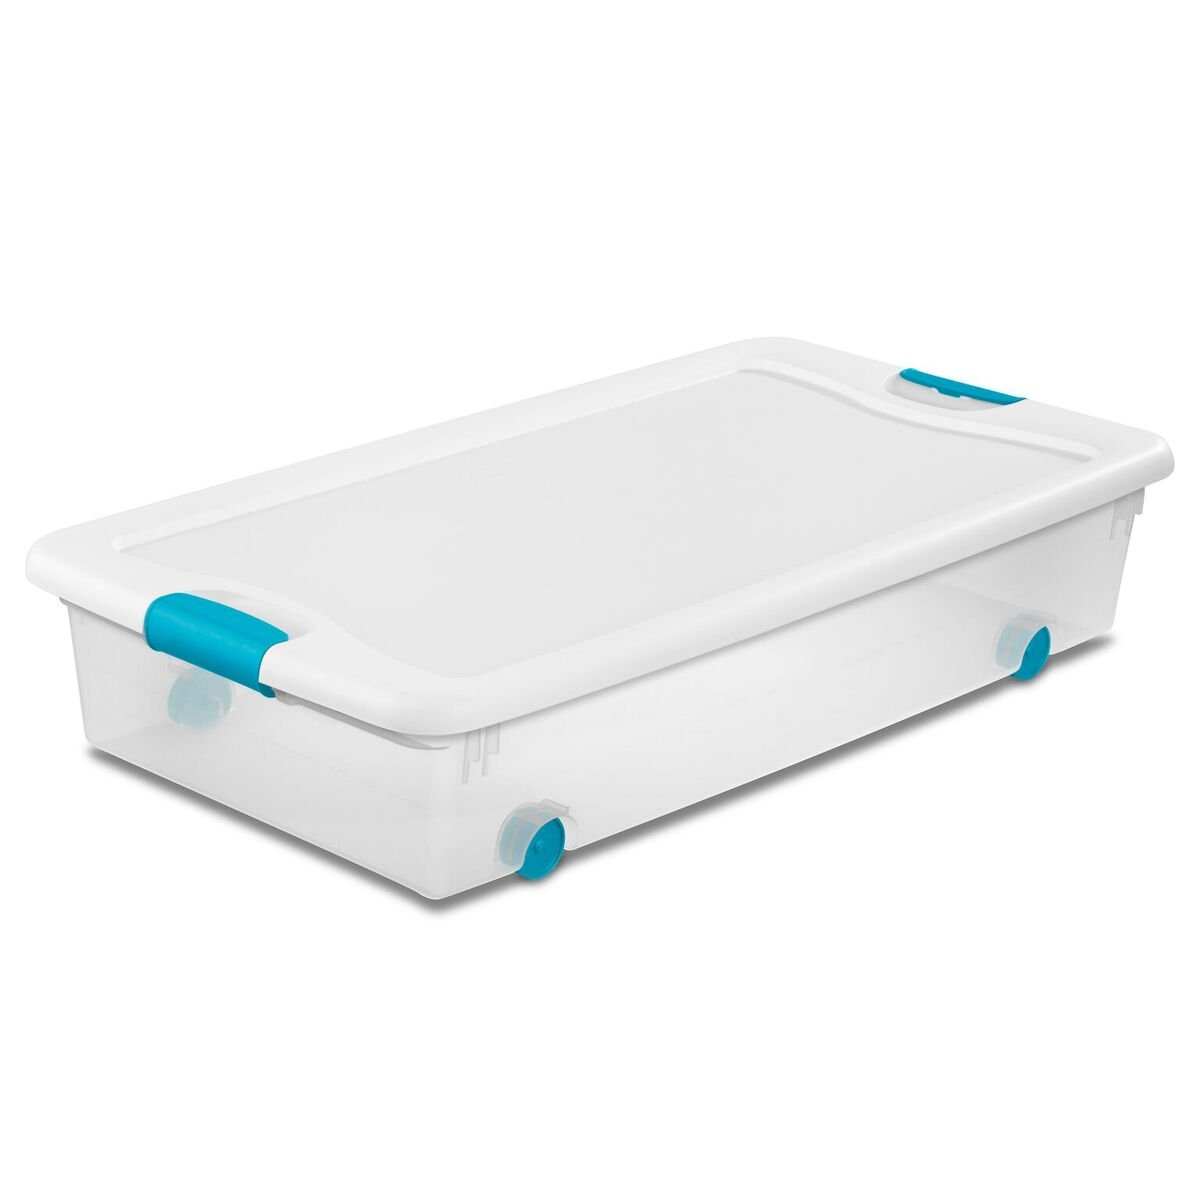 Sterilite 1498800456 quart/53 L Wheeled Latching Box with Clear Base, White Lid and Colored Latches, 4-Pack